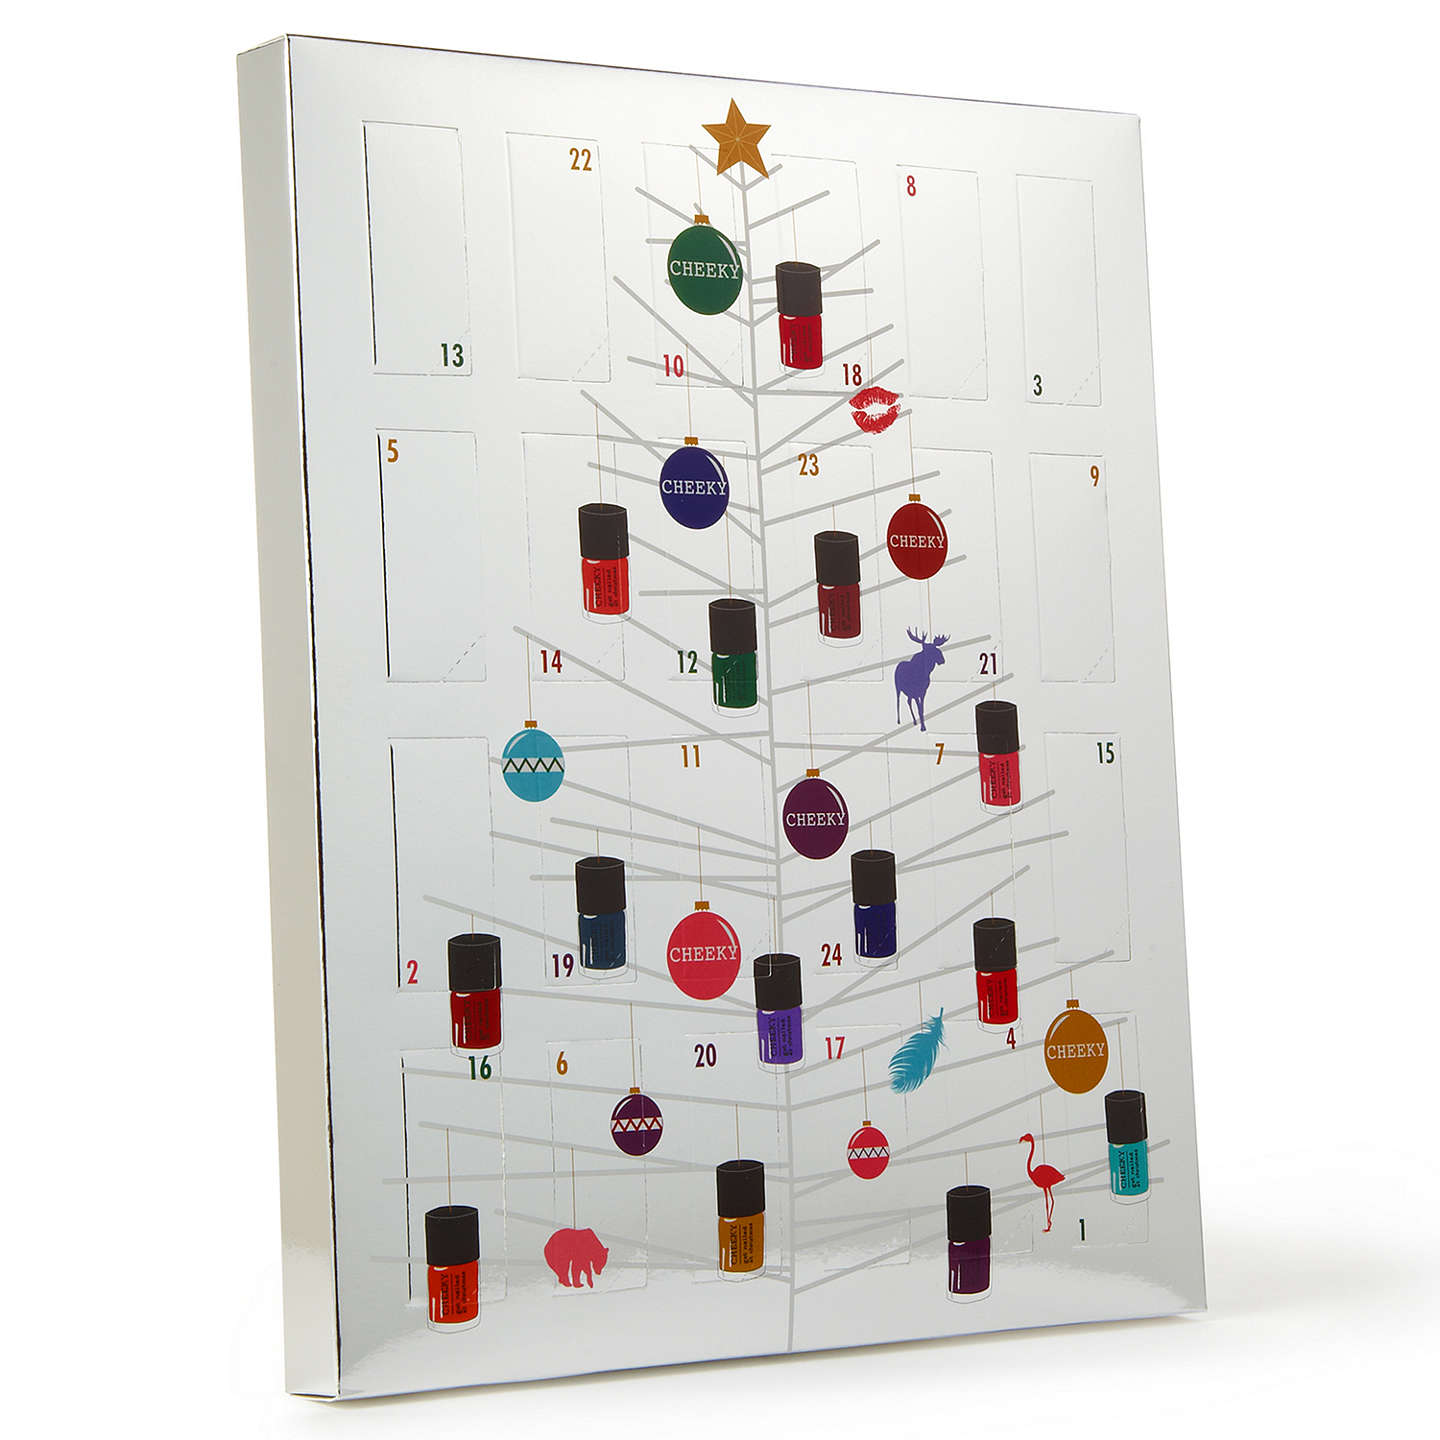 CHEEKY Nail Polish Advent Calendar, 24 x 5 ml at John Lewis